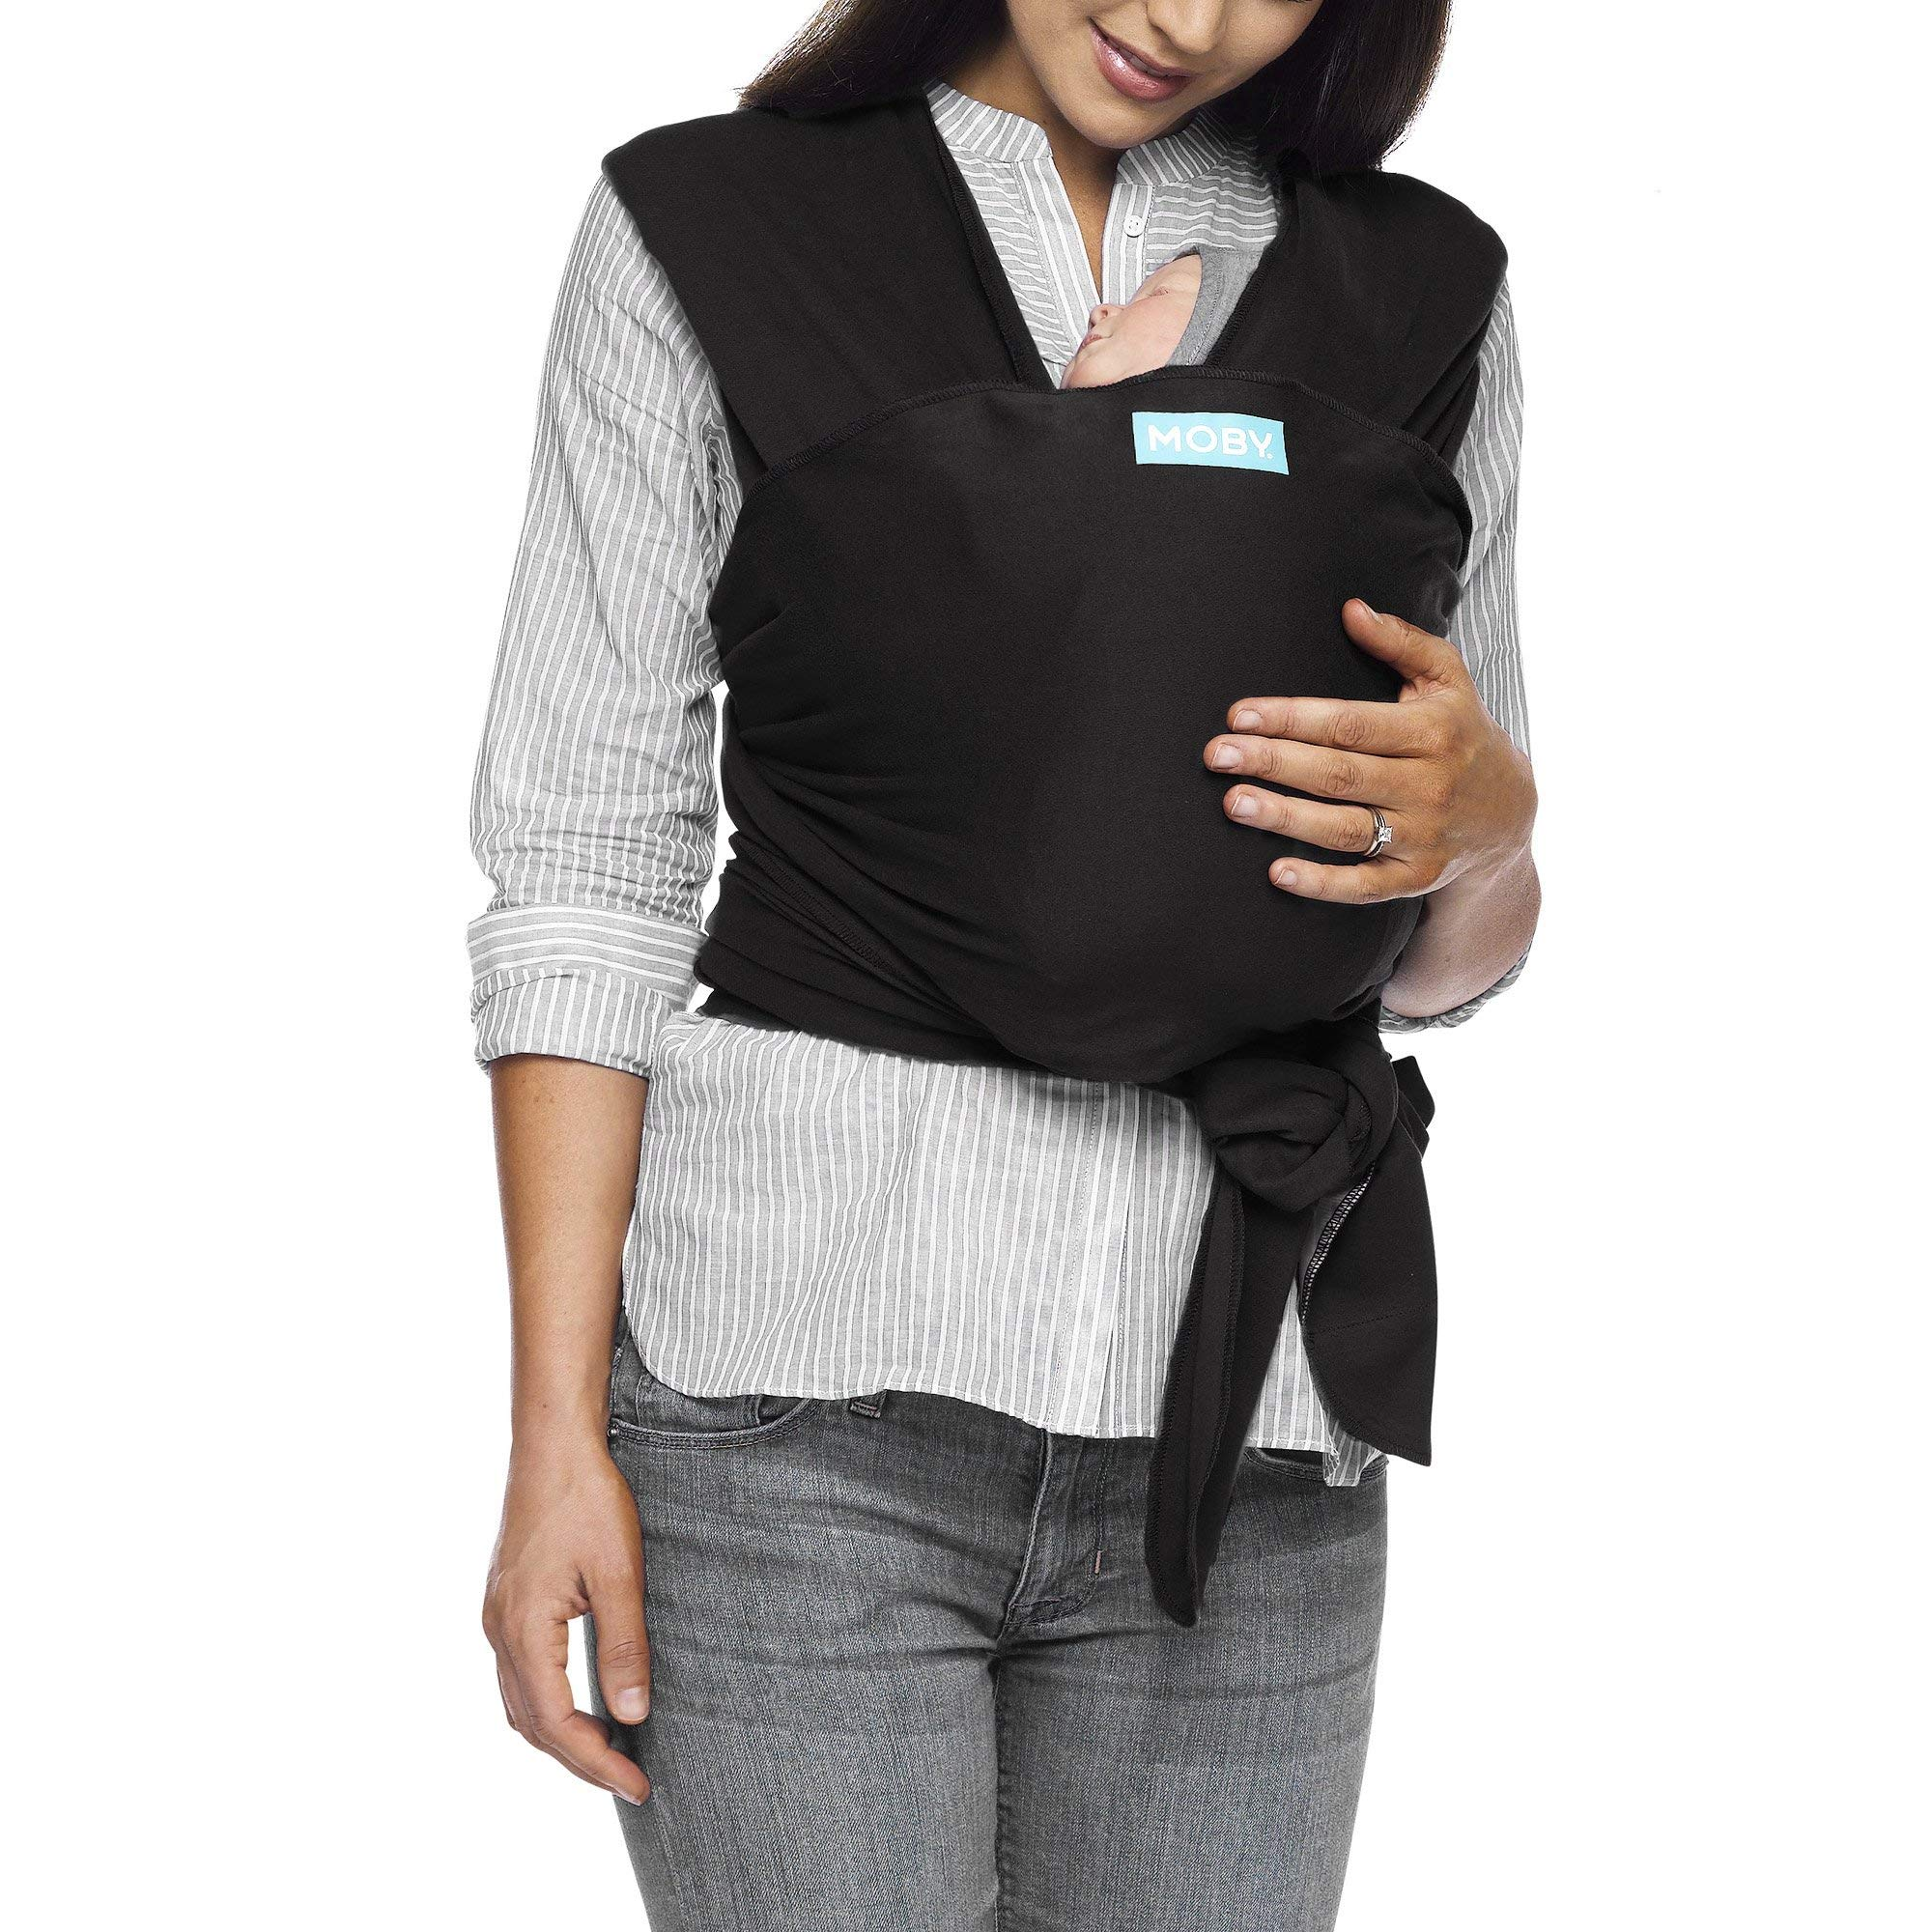 Moby Classic Baby Wrap (Black) - Baby Wearing Wrap for Parents On The Go - Baby Wrap Carrier for Newborns, Infants, and Toddlers-Baby Carrying Wrap for Babywearing, Breastfeeding, Keeping Baby Close